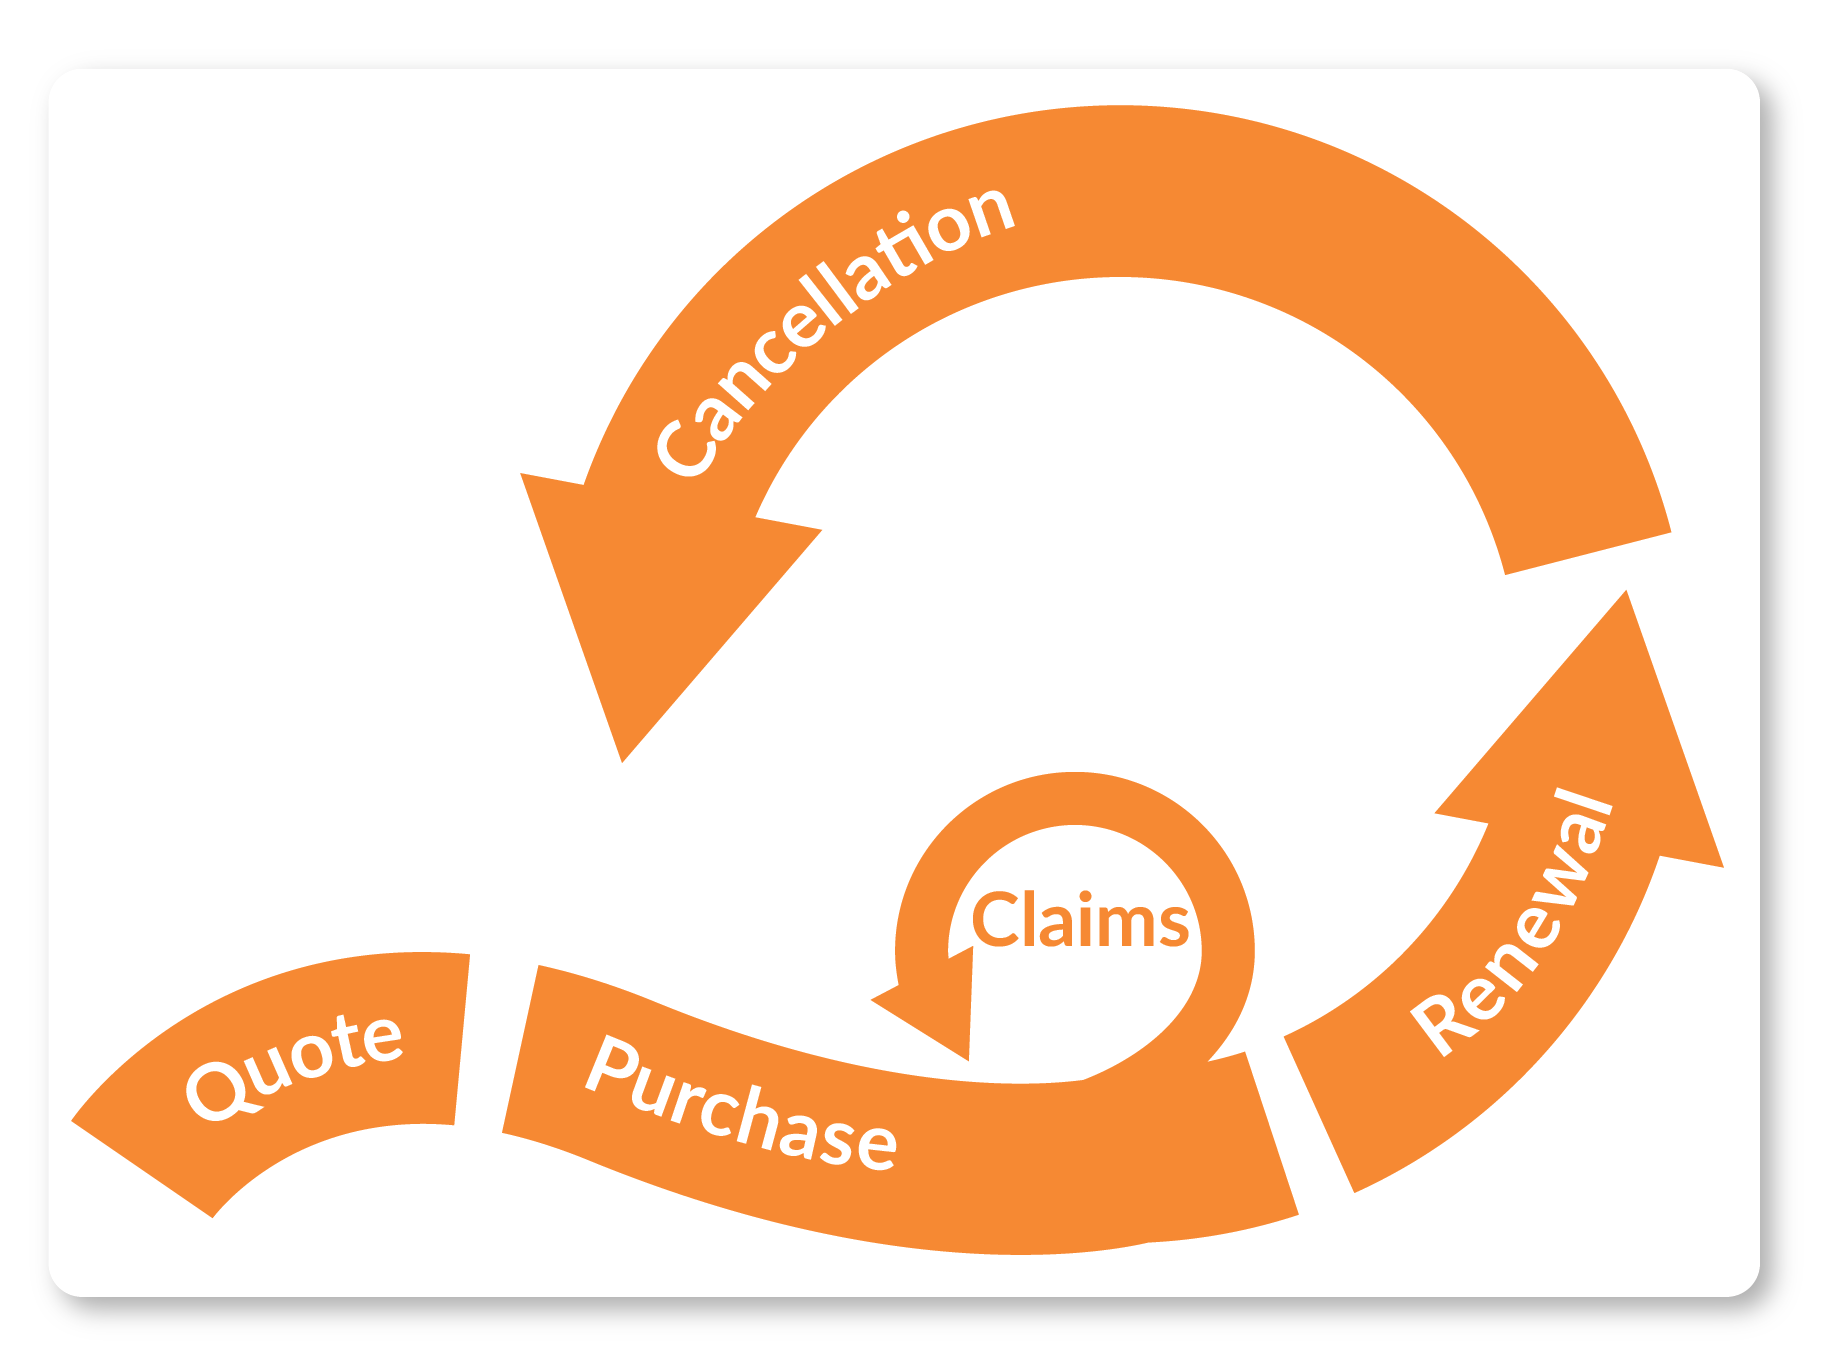 Insurance life cycle analysis with Touchpoint Group